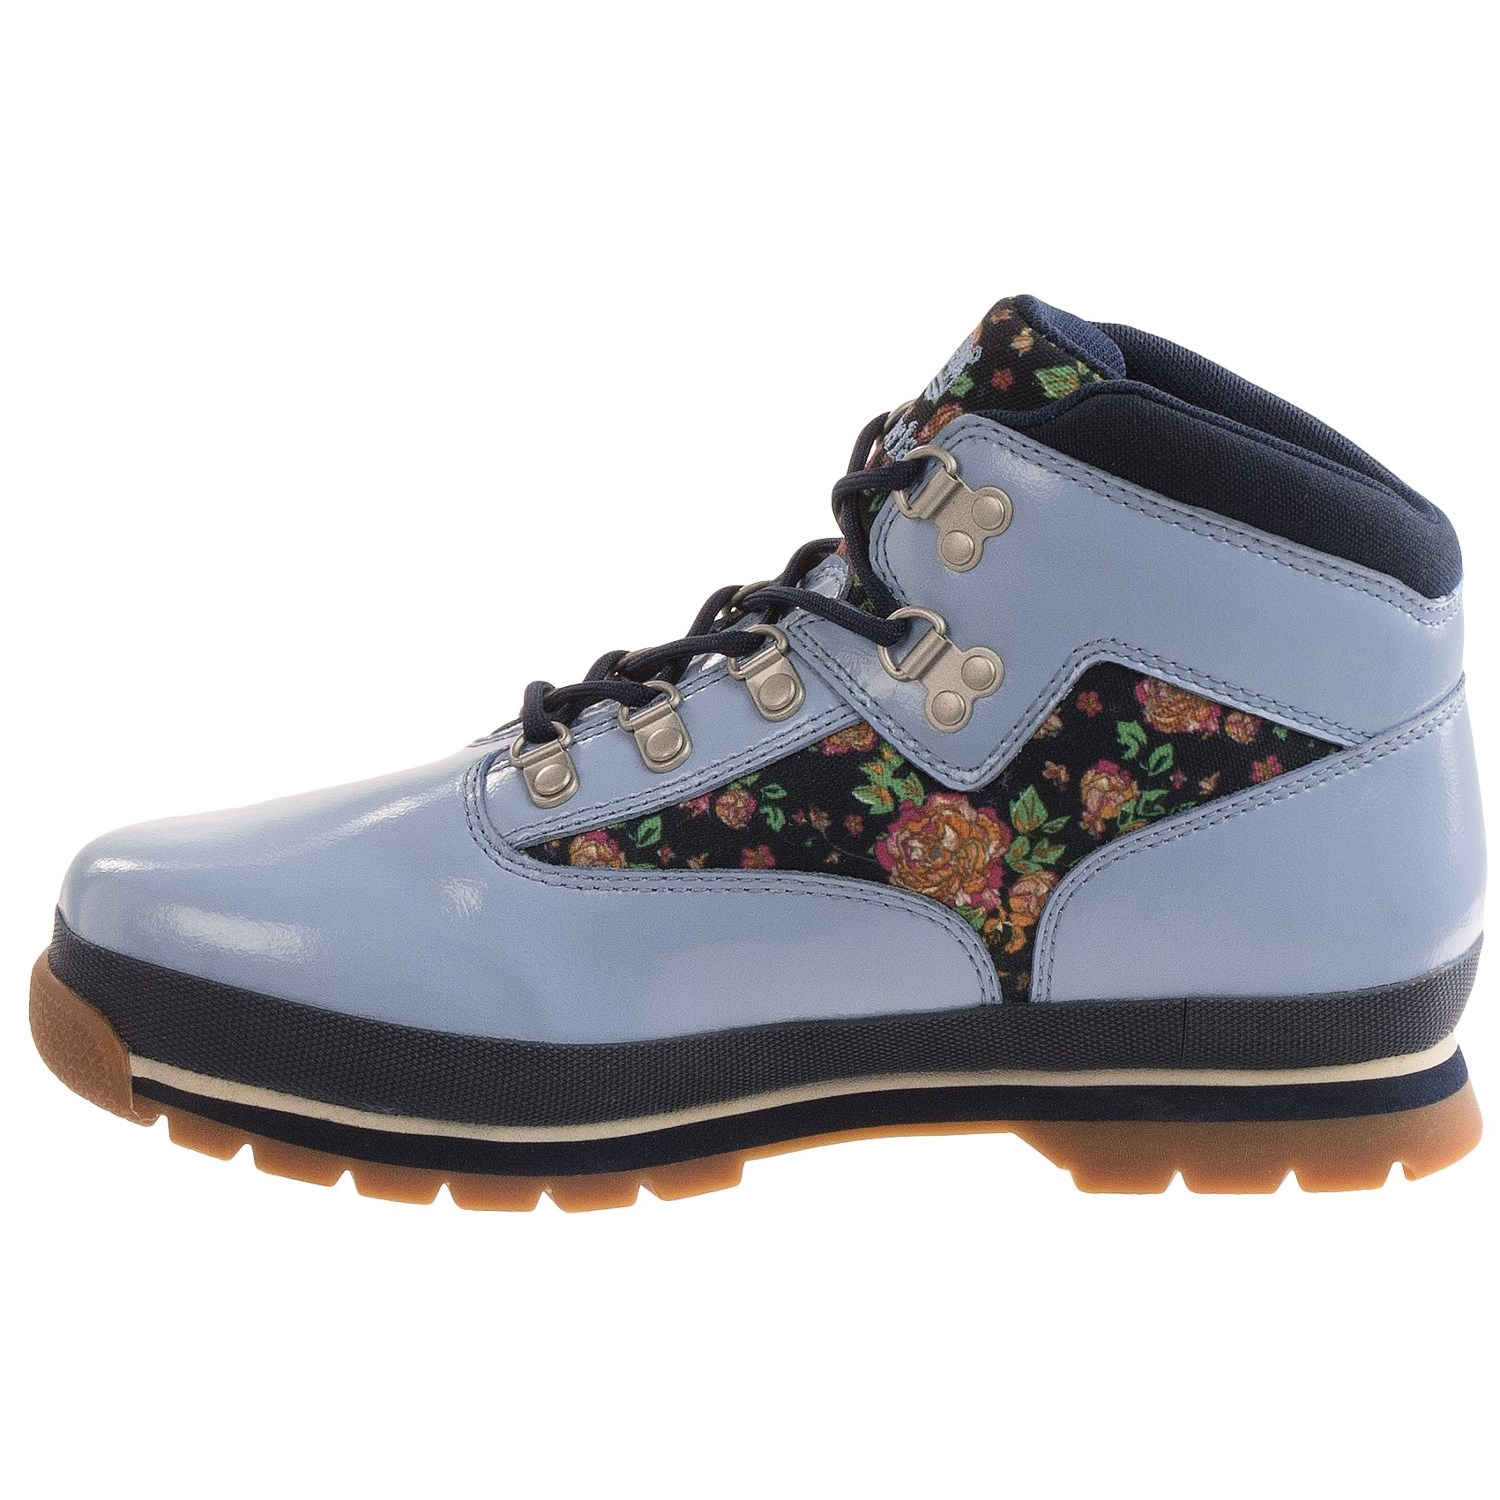 The official Timberland NZ online store. Shop for the latest boots, shoes and clothing here. Earn Timberland rewards, and get it delivered for free for orders over $